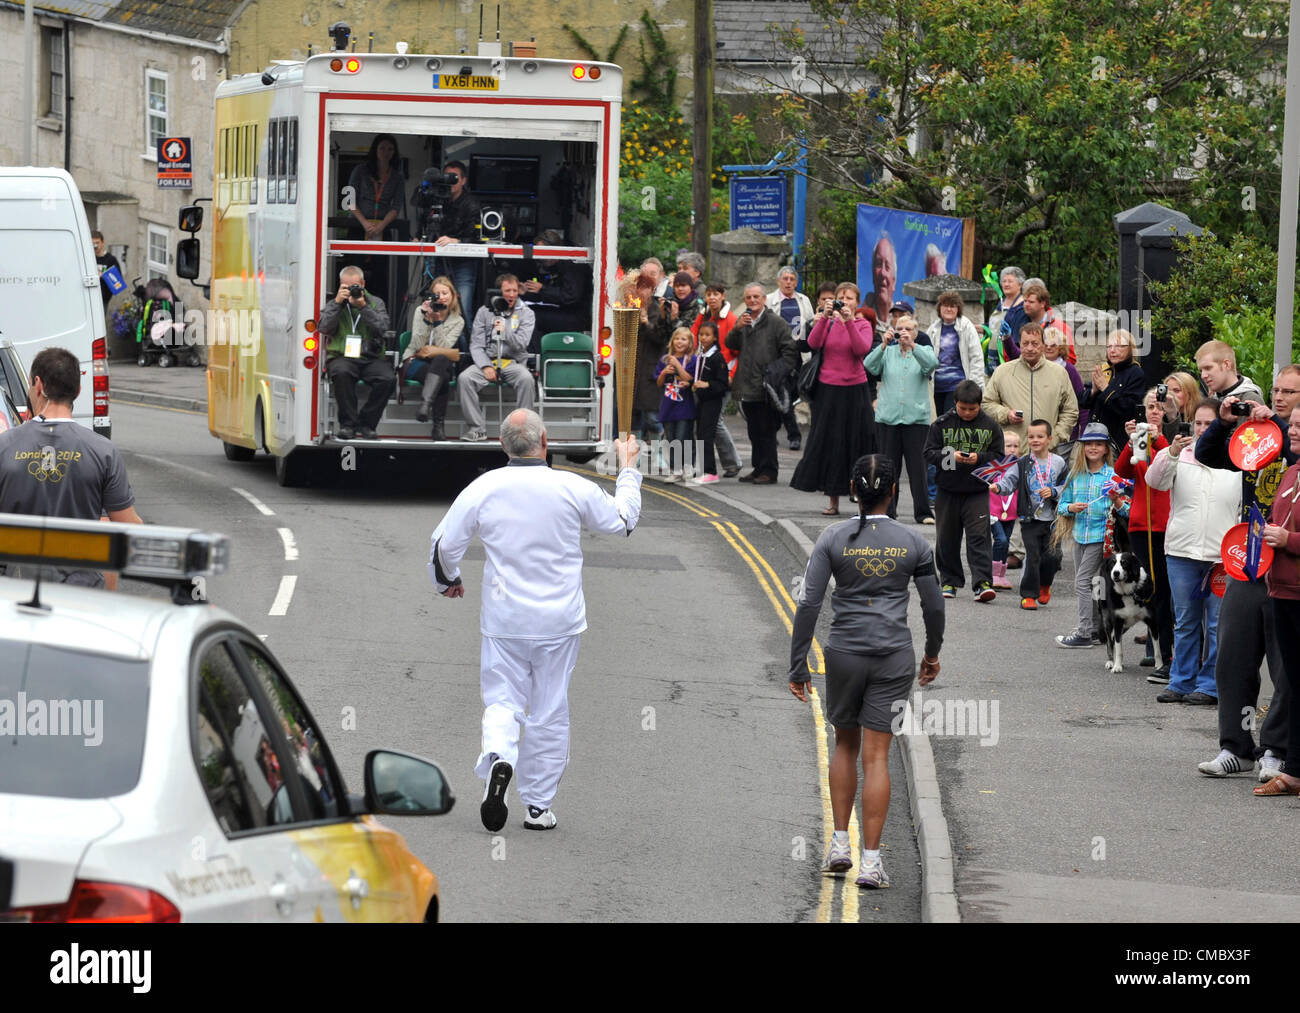 Day 56 of the torch relay around the UK…The torch passing through Fortuneswell, Portland in Dorset. Britain. 13/07/2012 - Stock Image